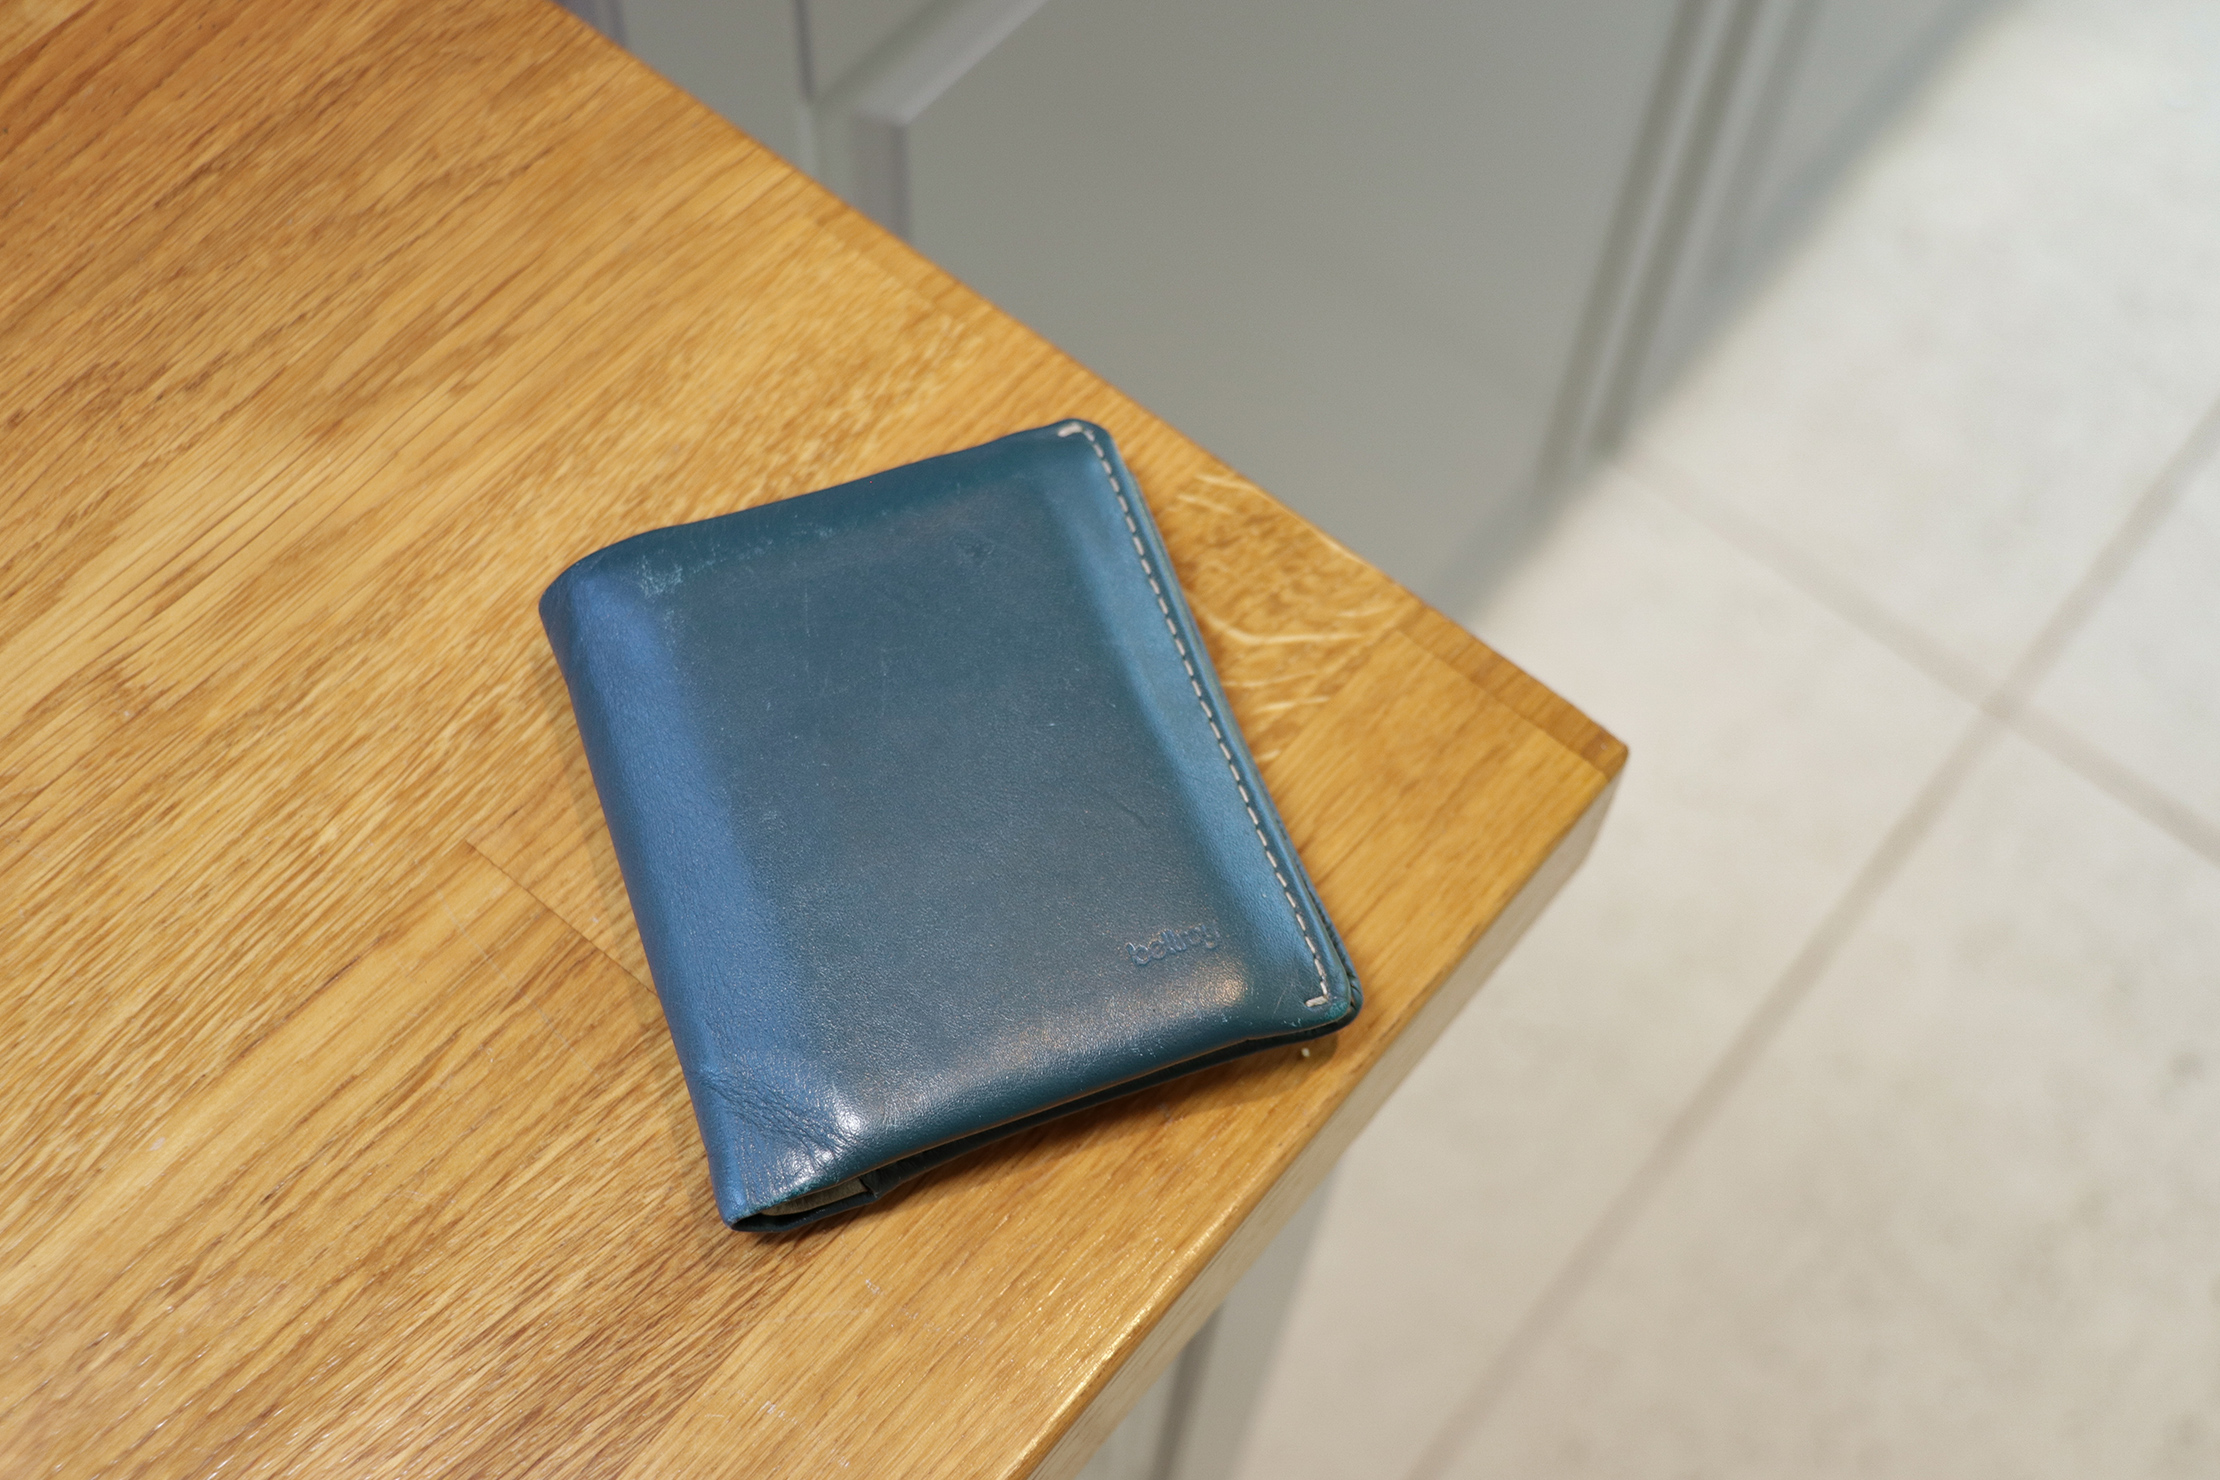 Bellroy Note Sleeve In Essex, England 2